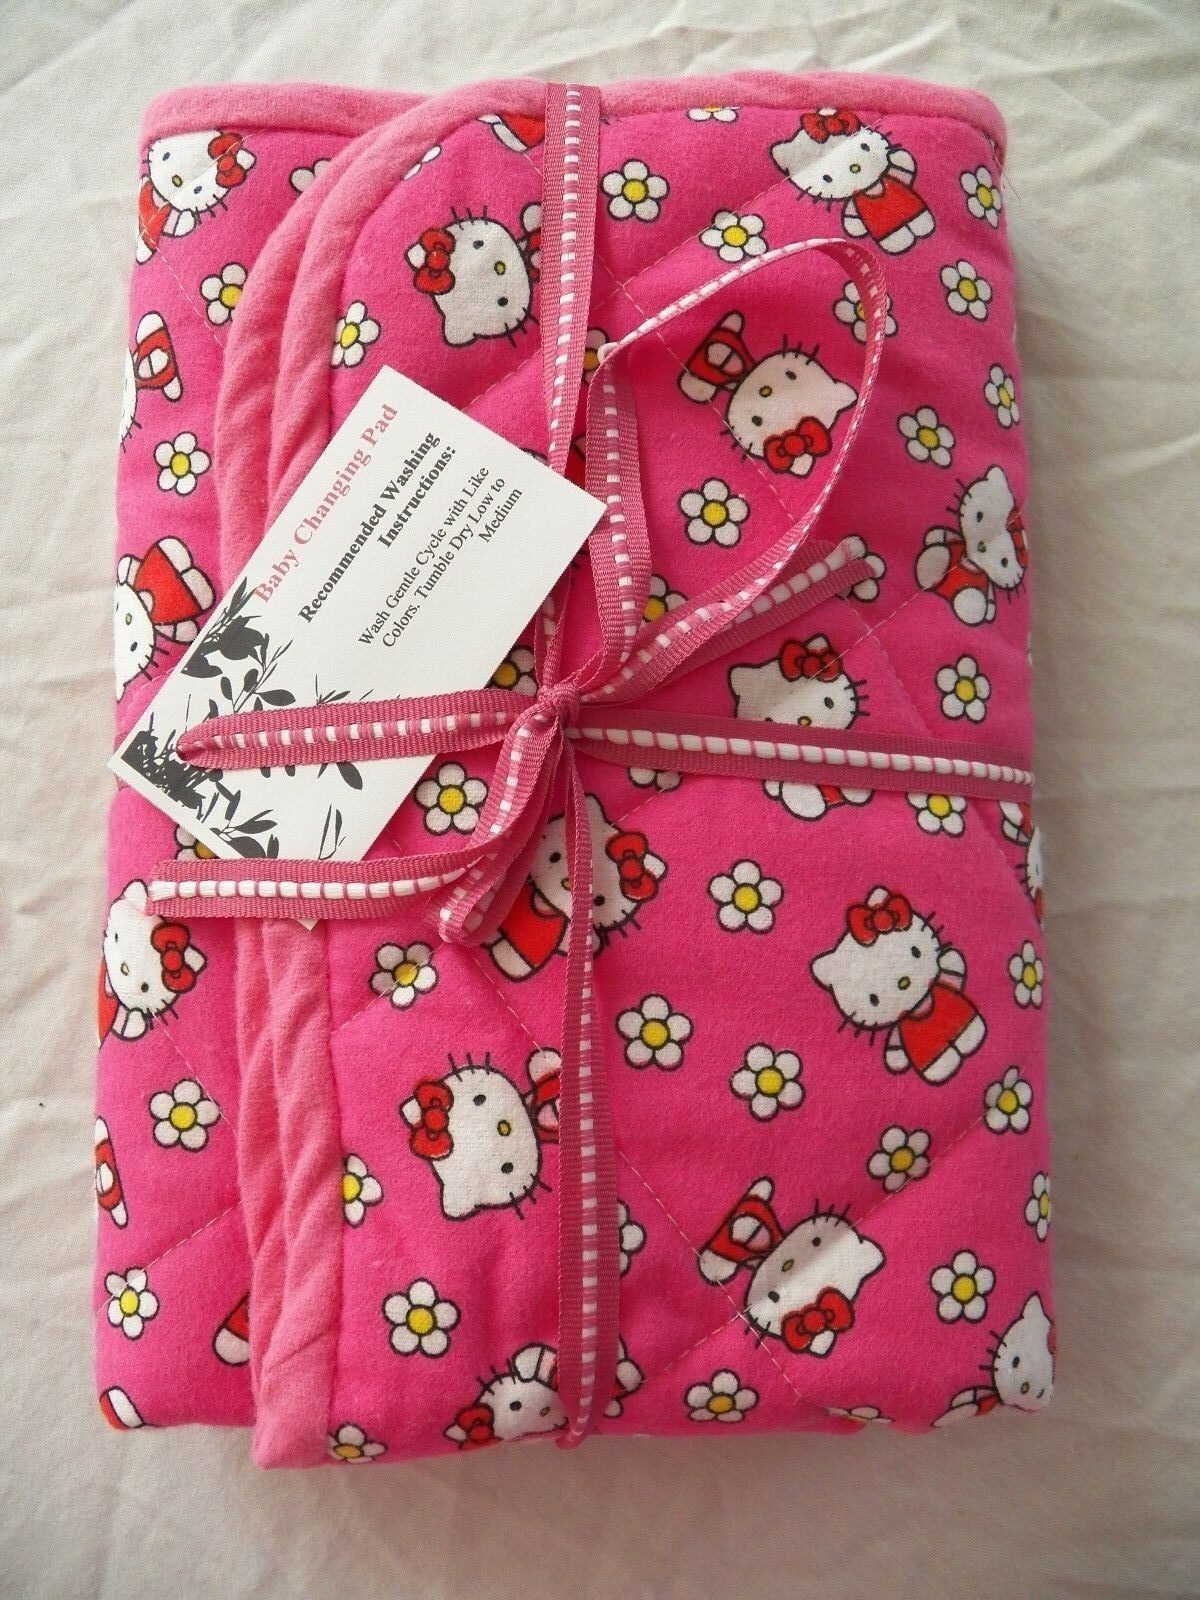 BABY CHANGING PAD Portable Diaper Travel Mat Cotton Washable Padded Handmade NEW 32